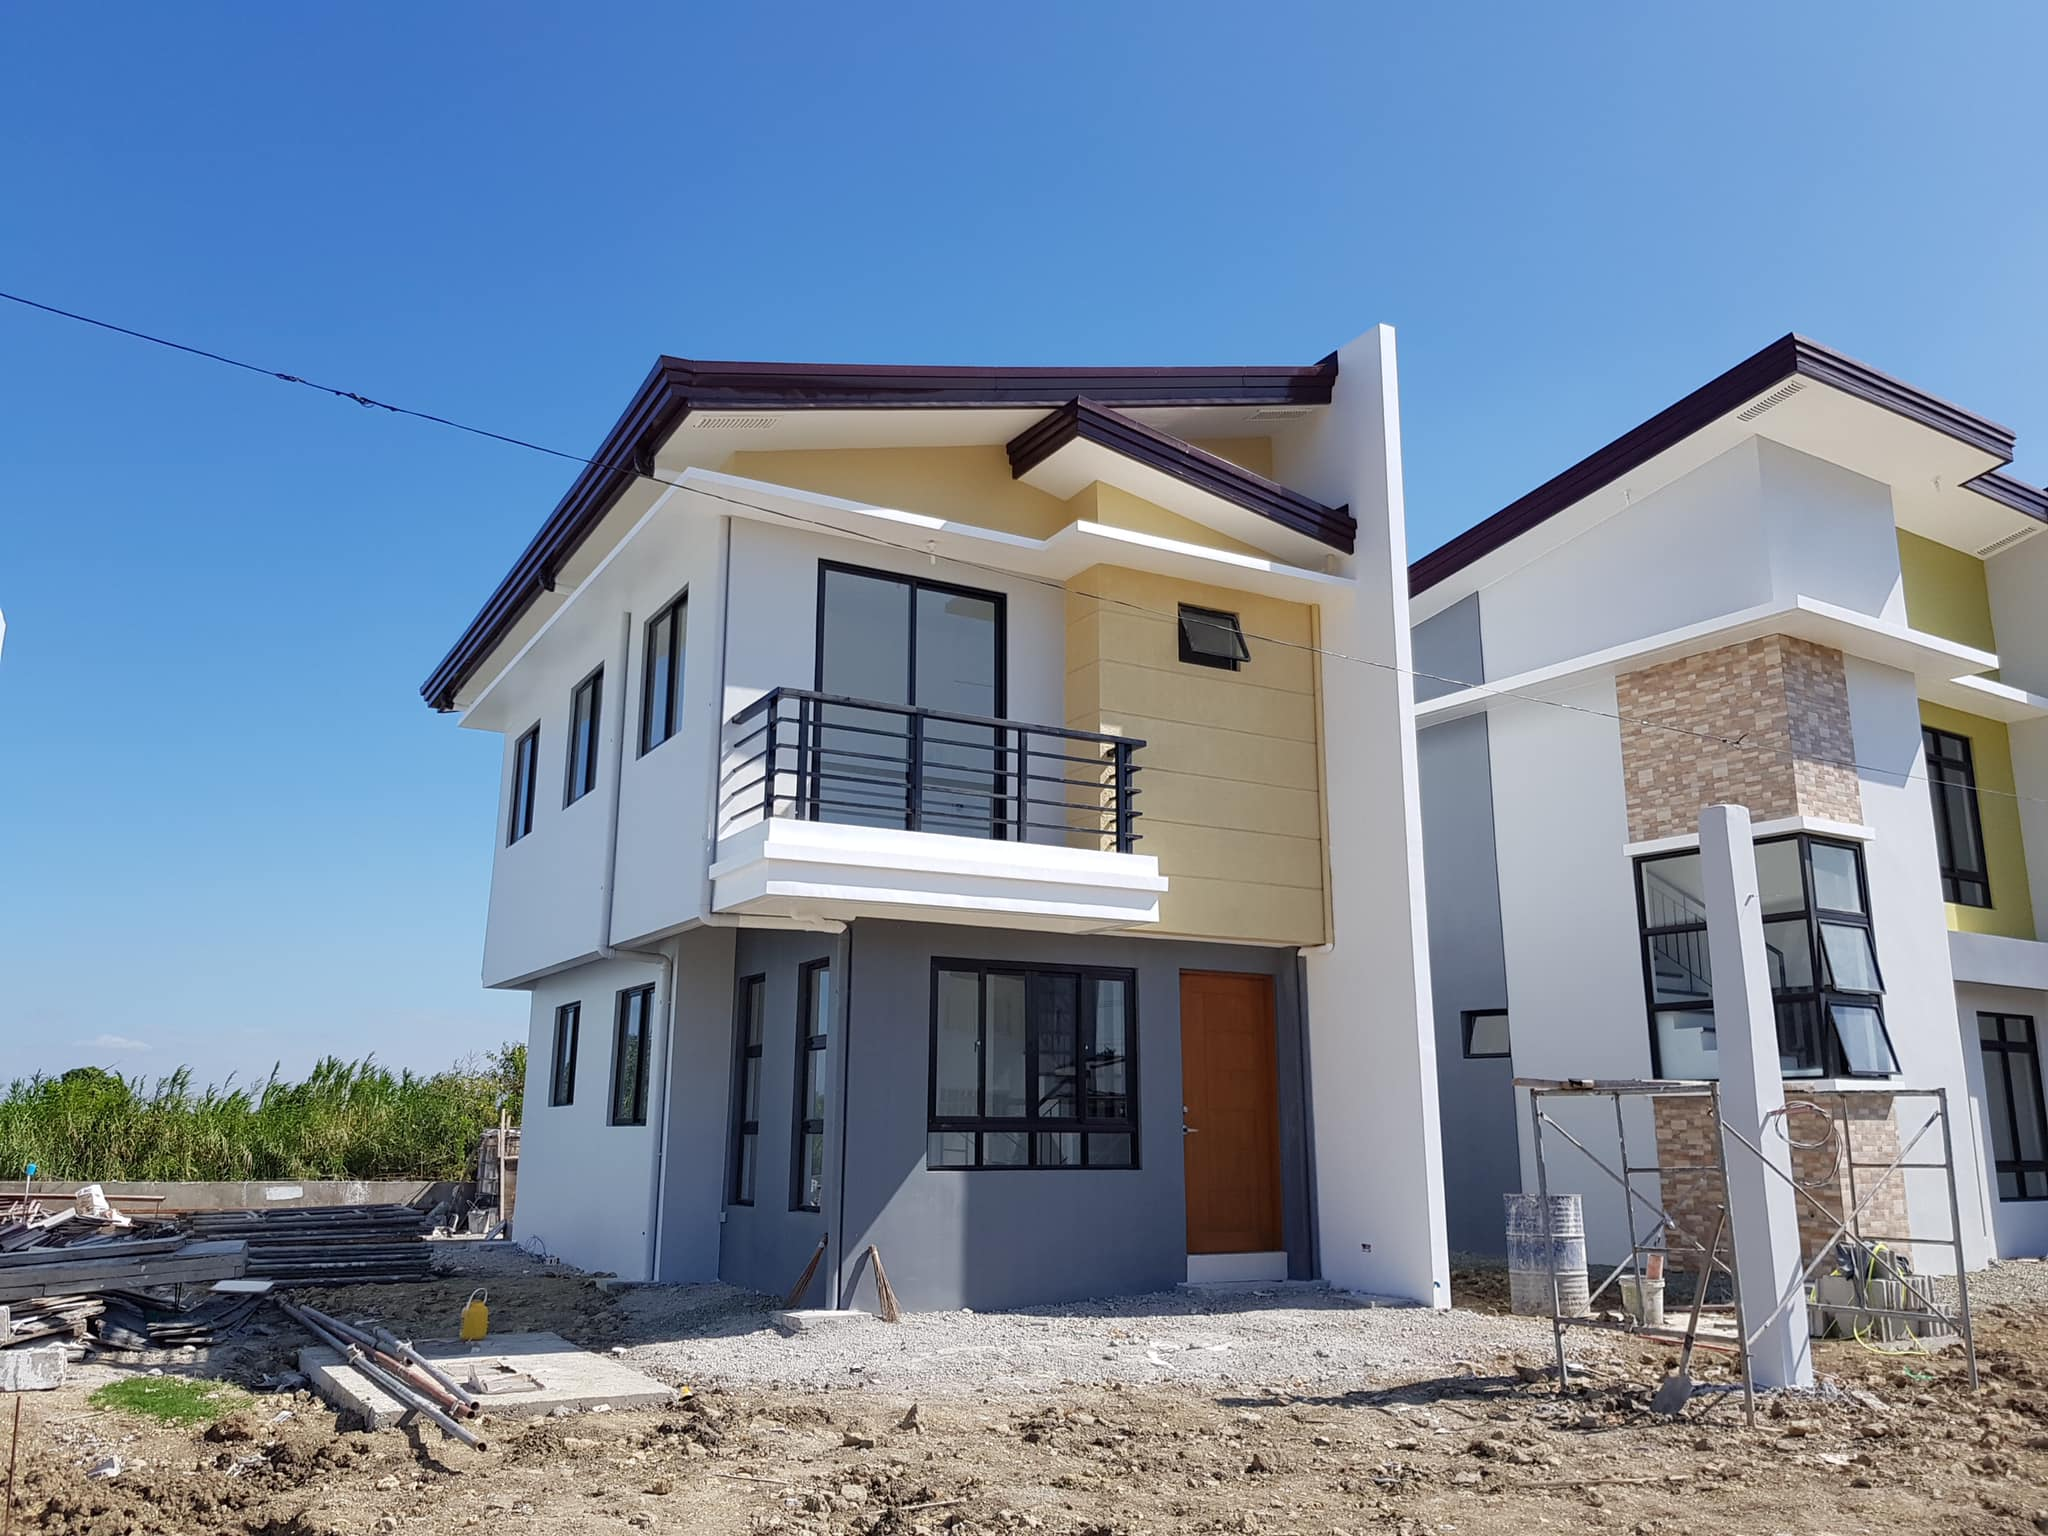 Rylee at Riverlane Trail - Pag-ibig Single Houses for Sale in Gen. Trias Cavite